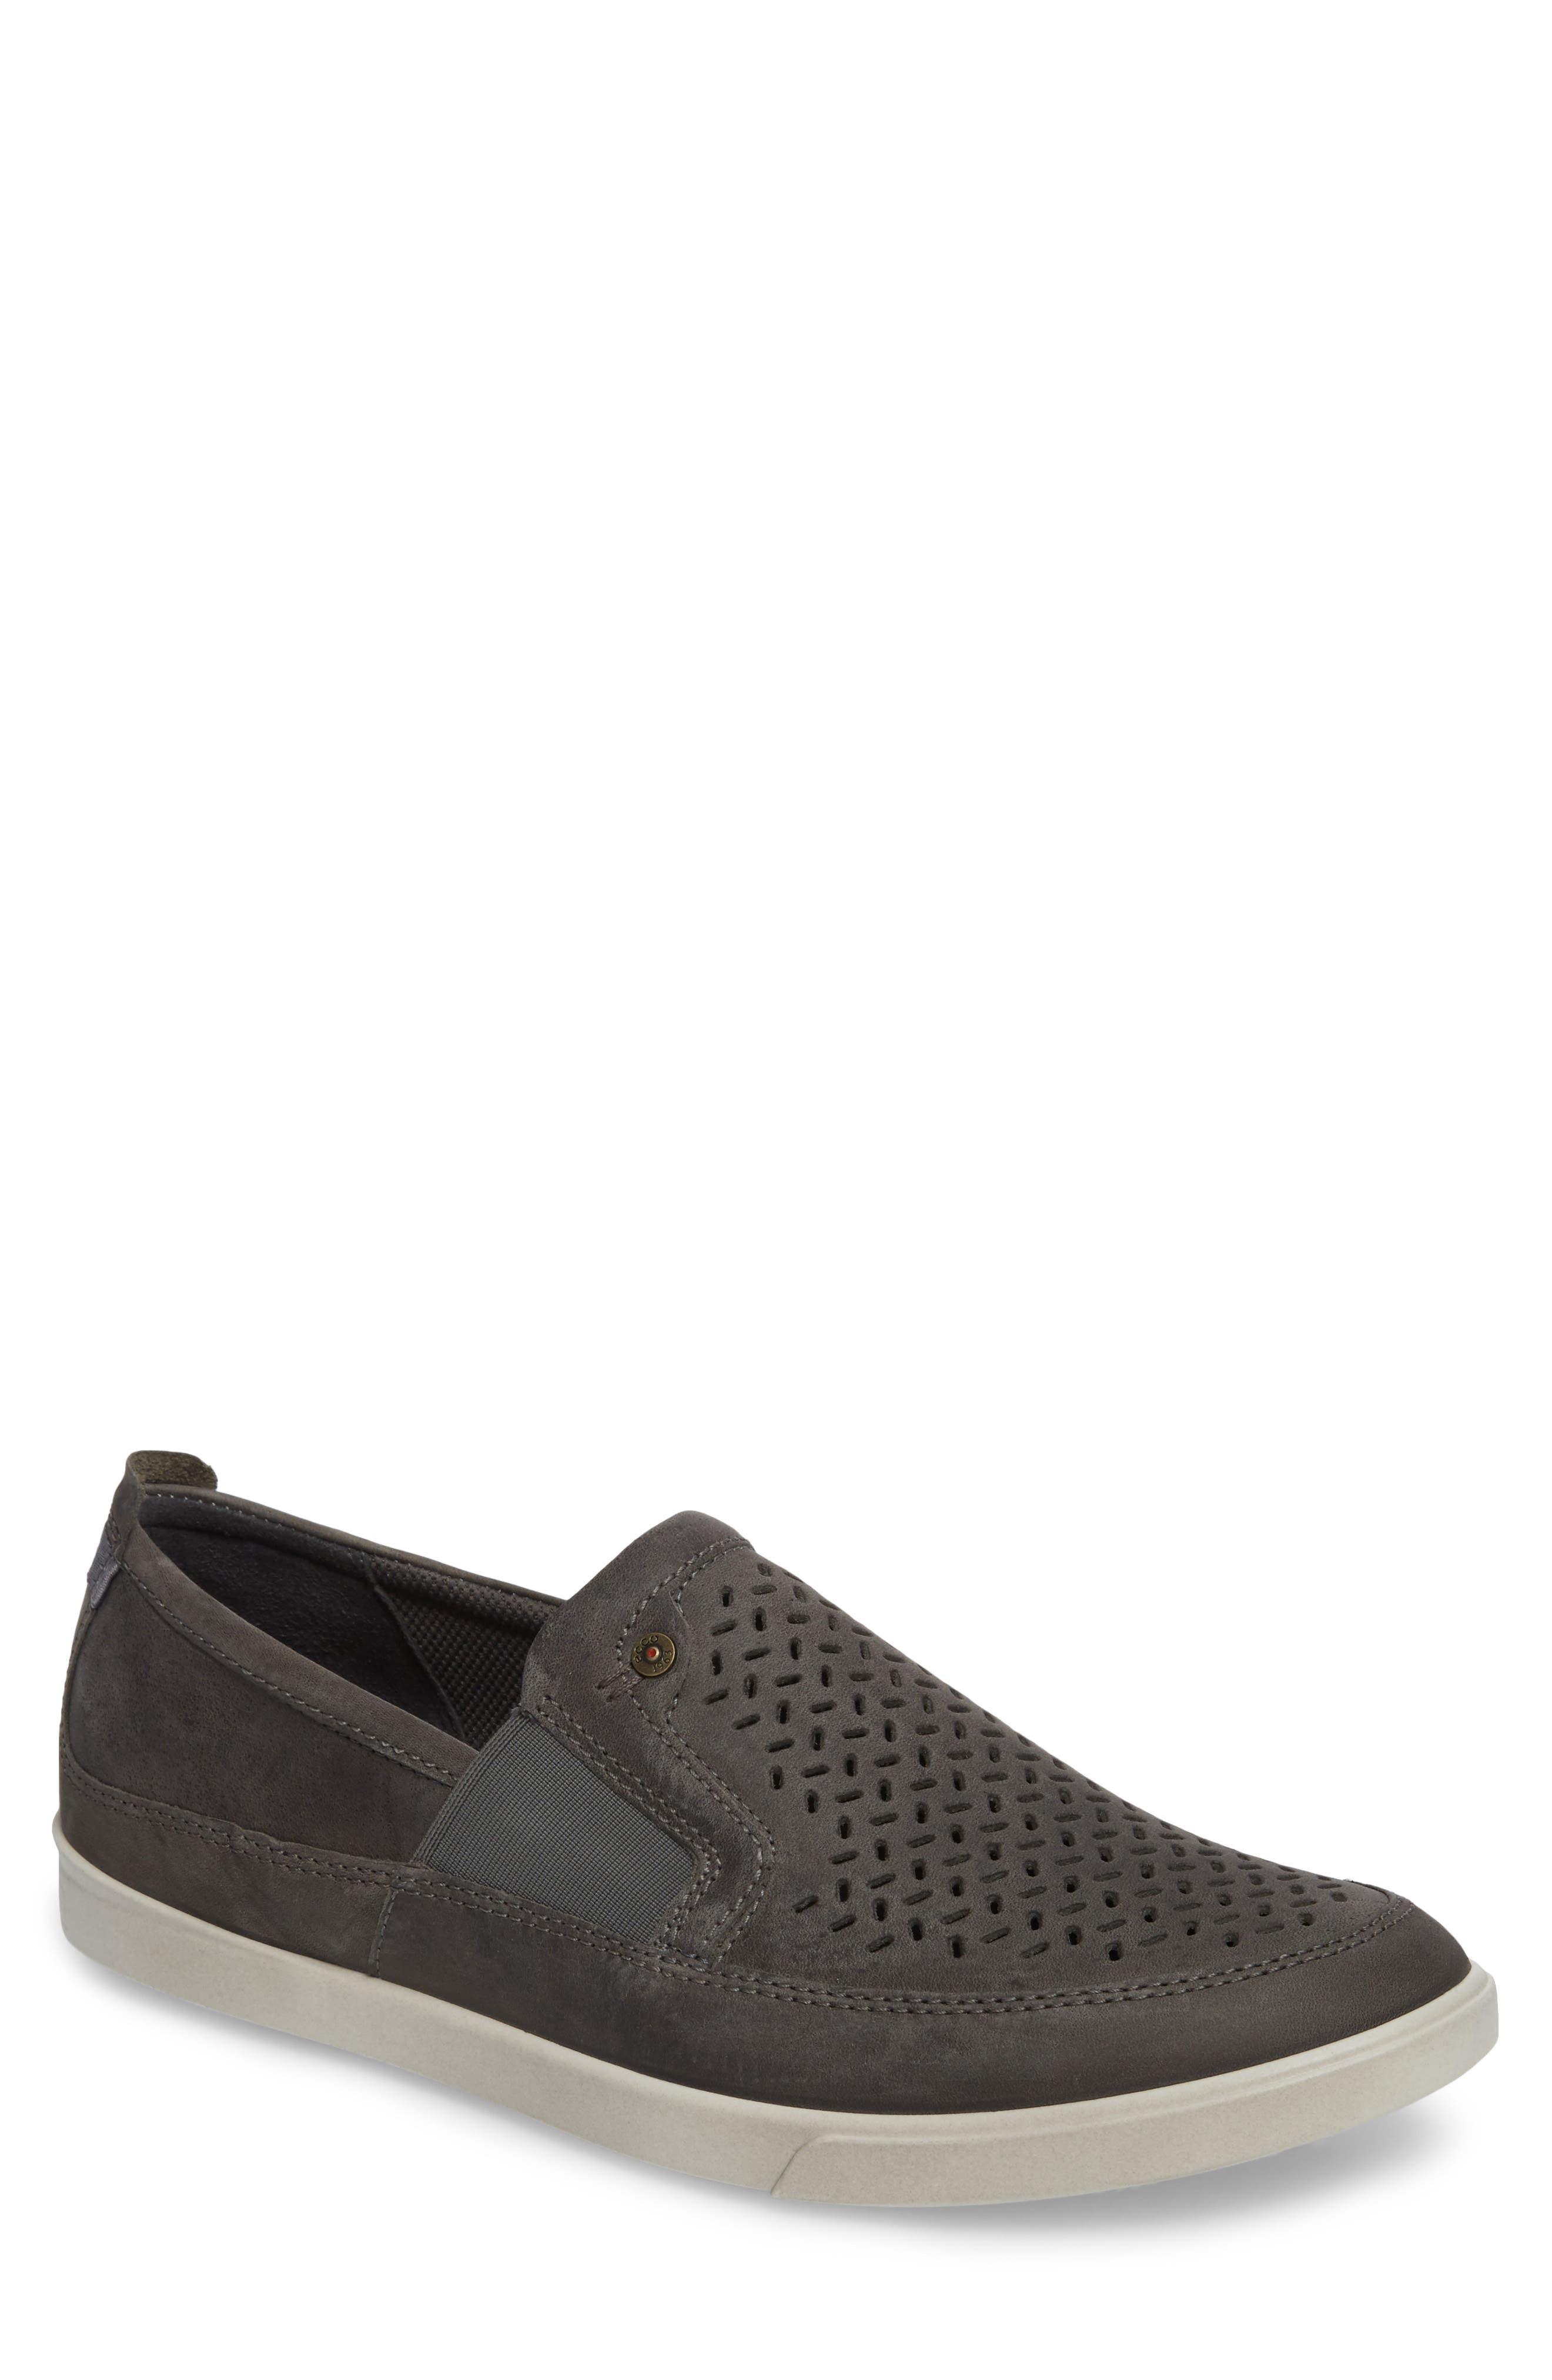 'Collin' Perforated Slip On Sneaker,                             Main thumbnail 1, color,                             Titanium Leather